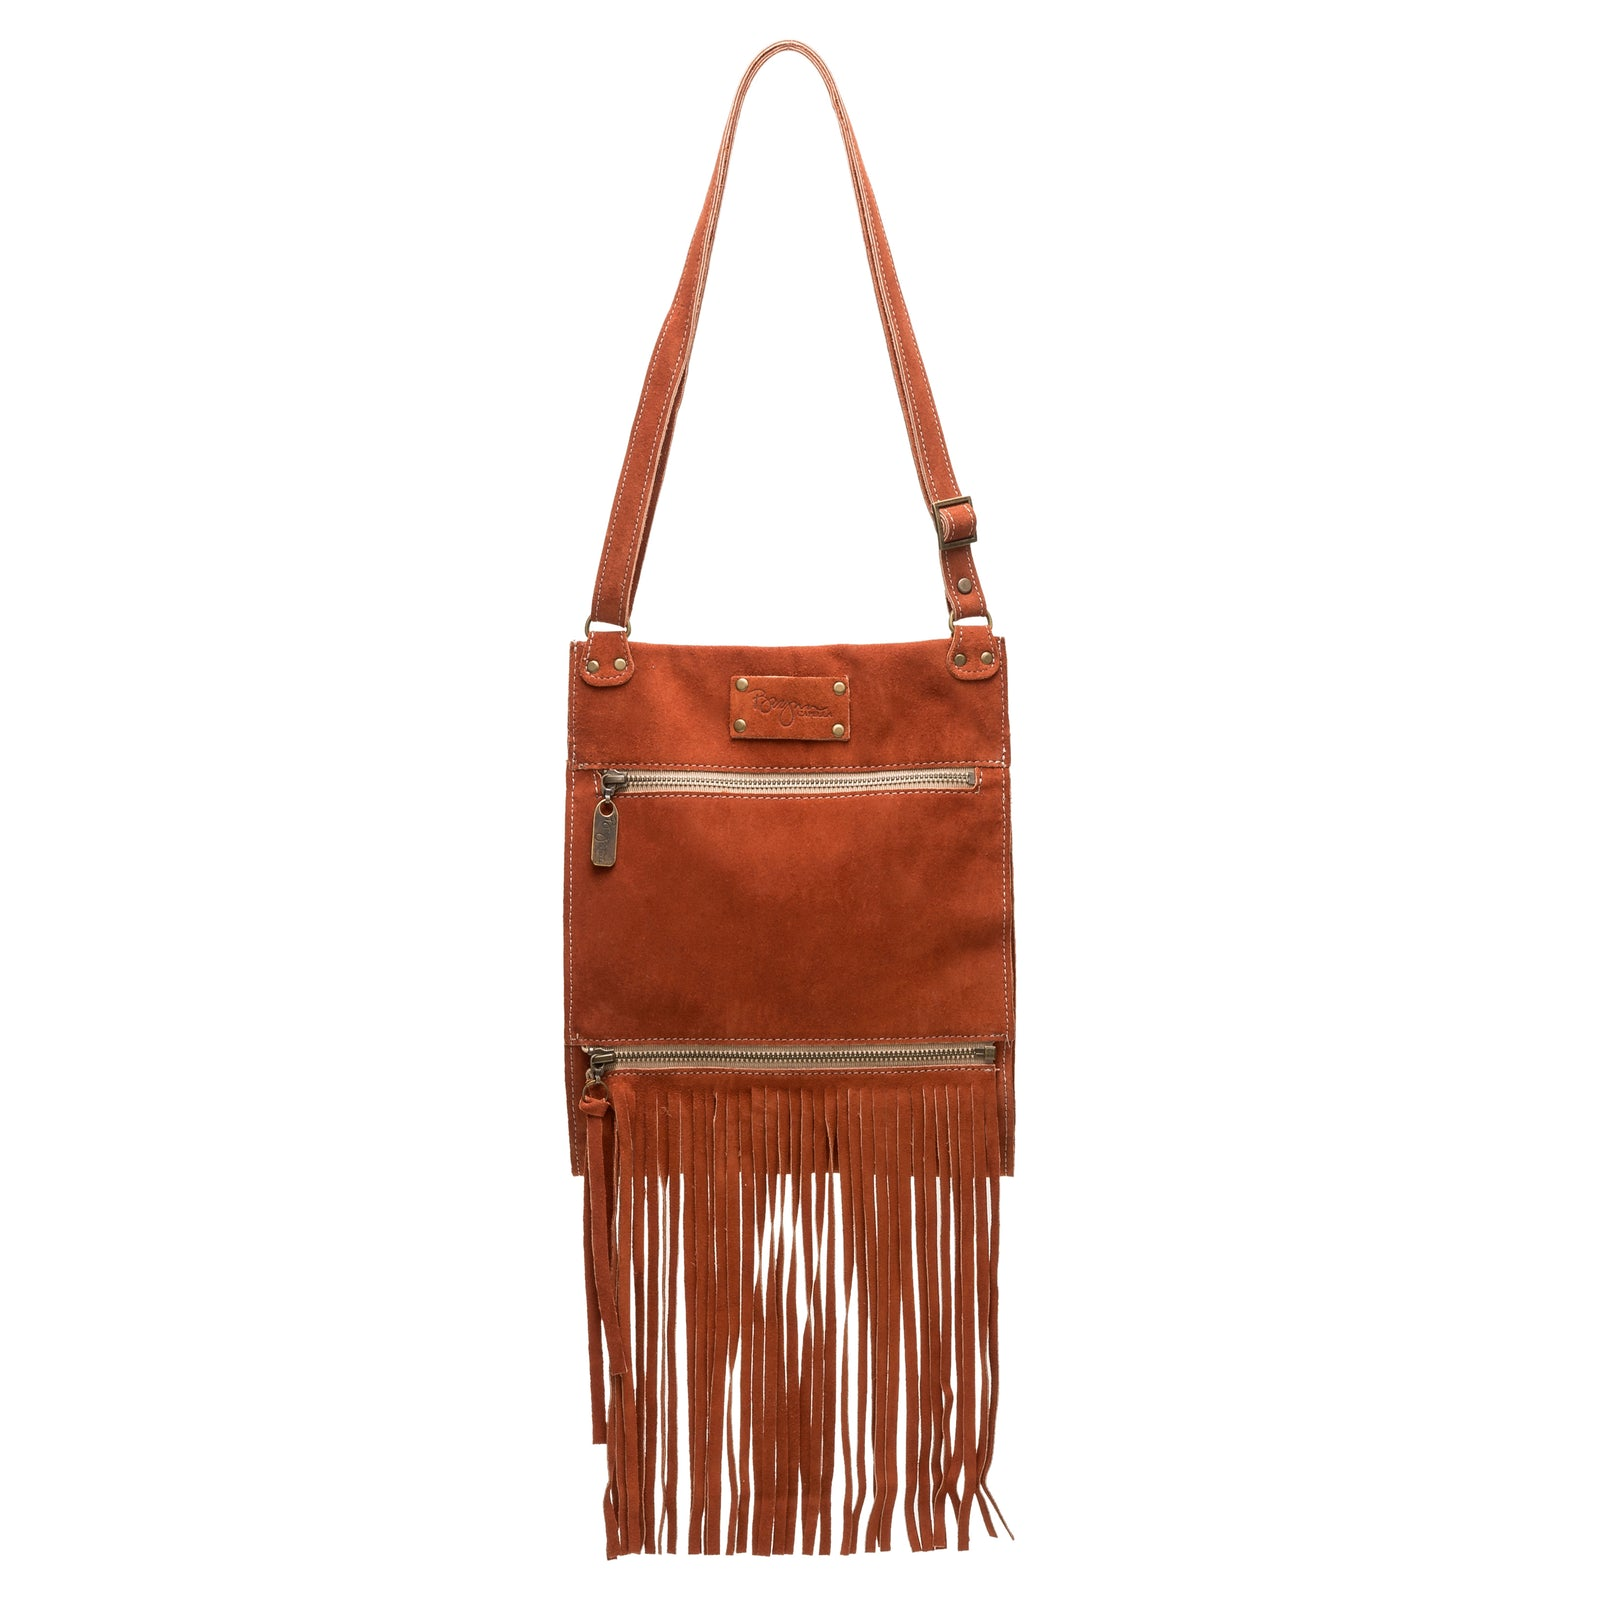 Kari Fringe Crossbody - Cinnamon - Brynn Capella, Small Crossbody